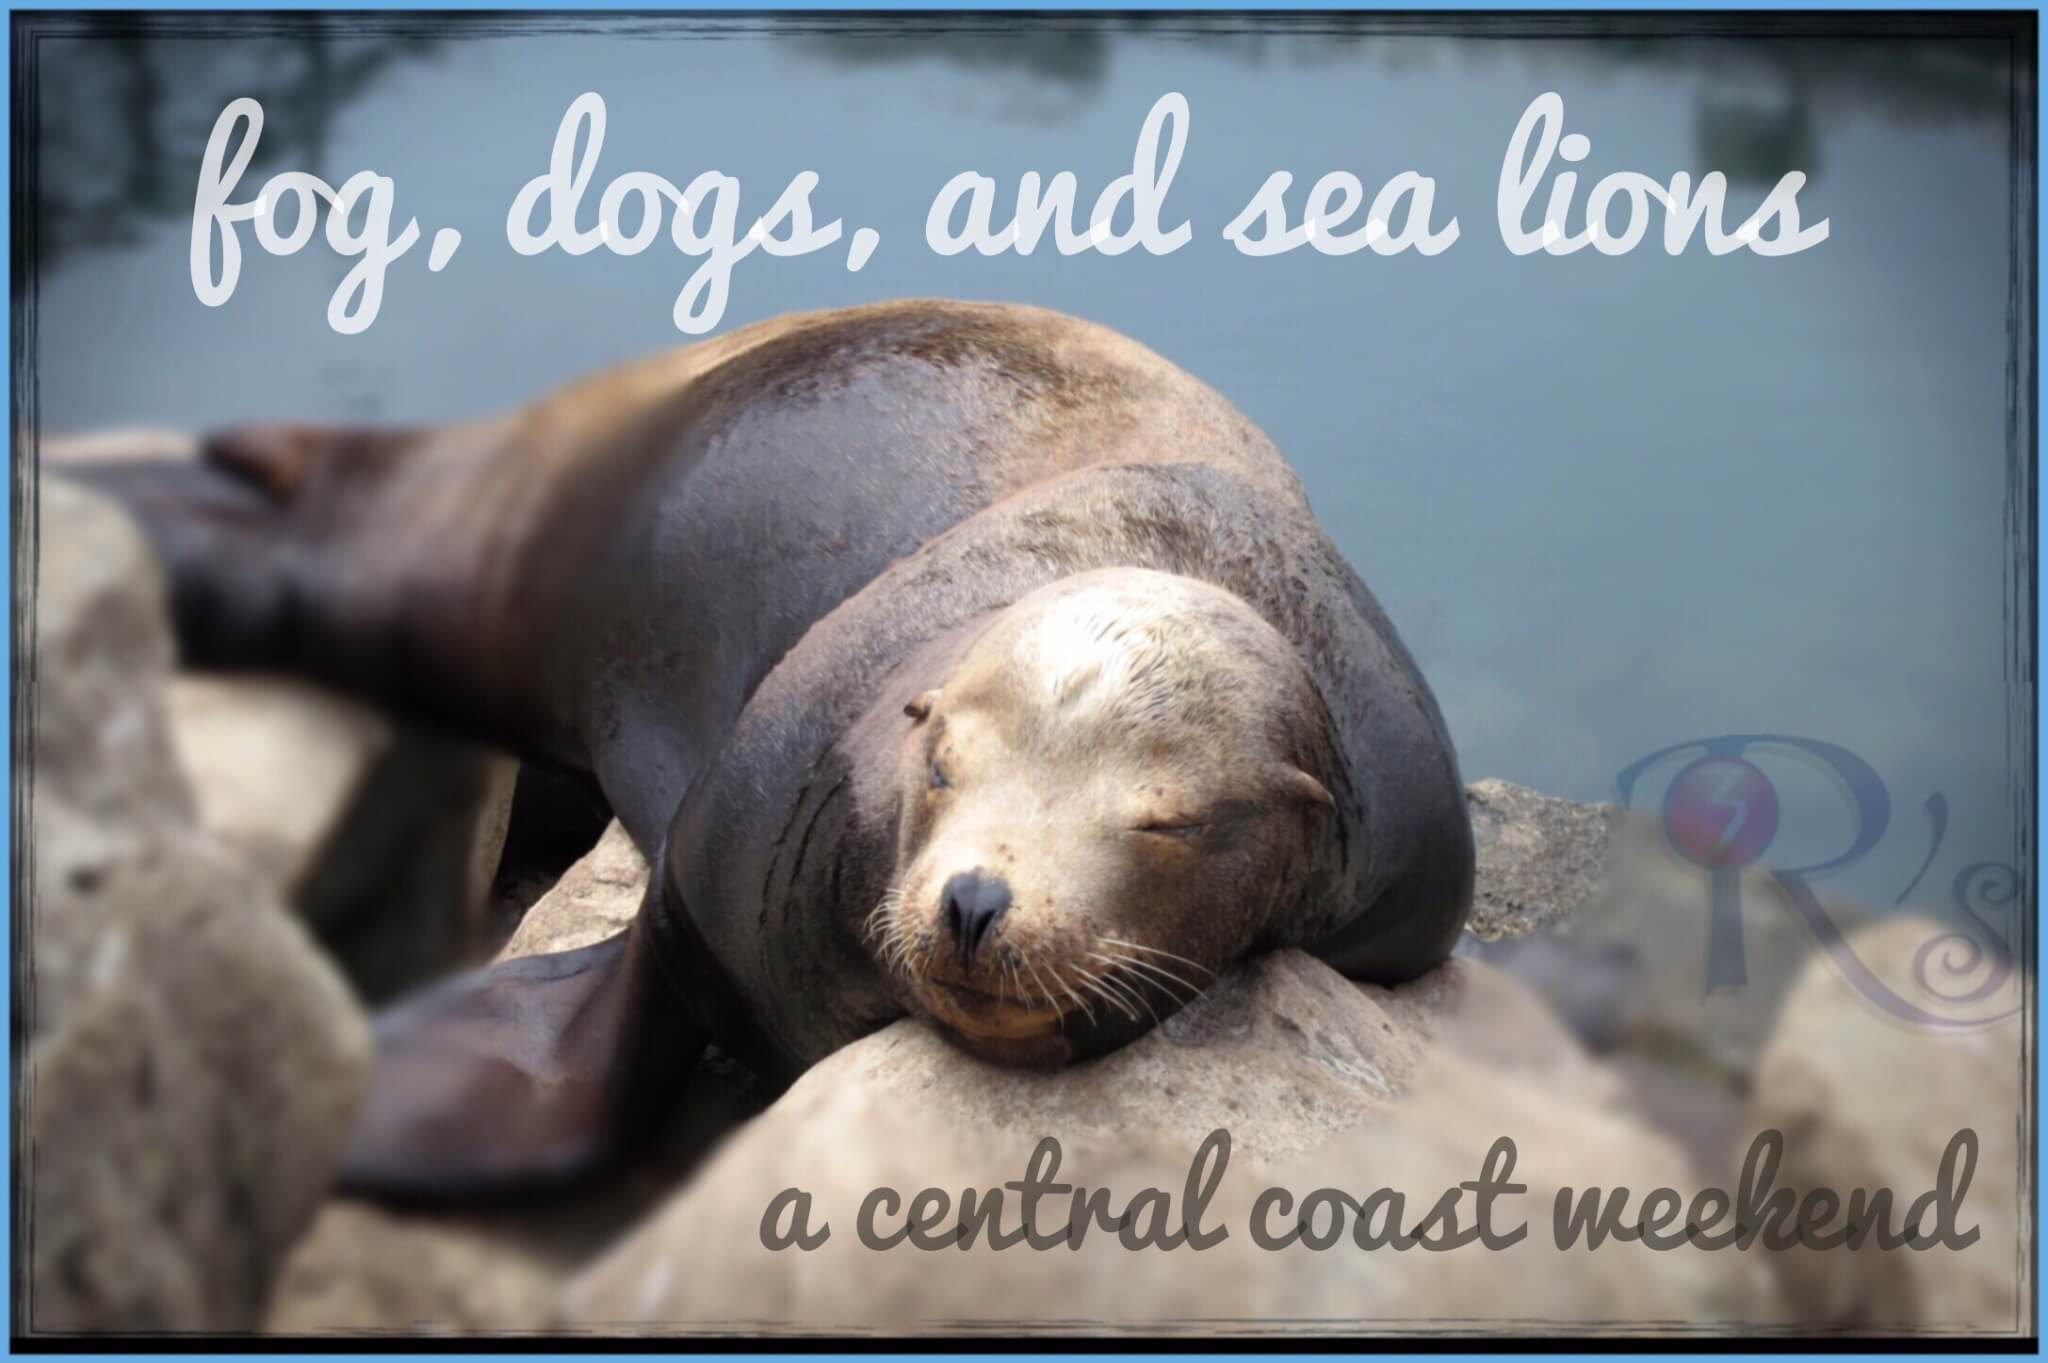 fog dogs and sea lions central coast weekend